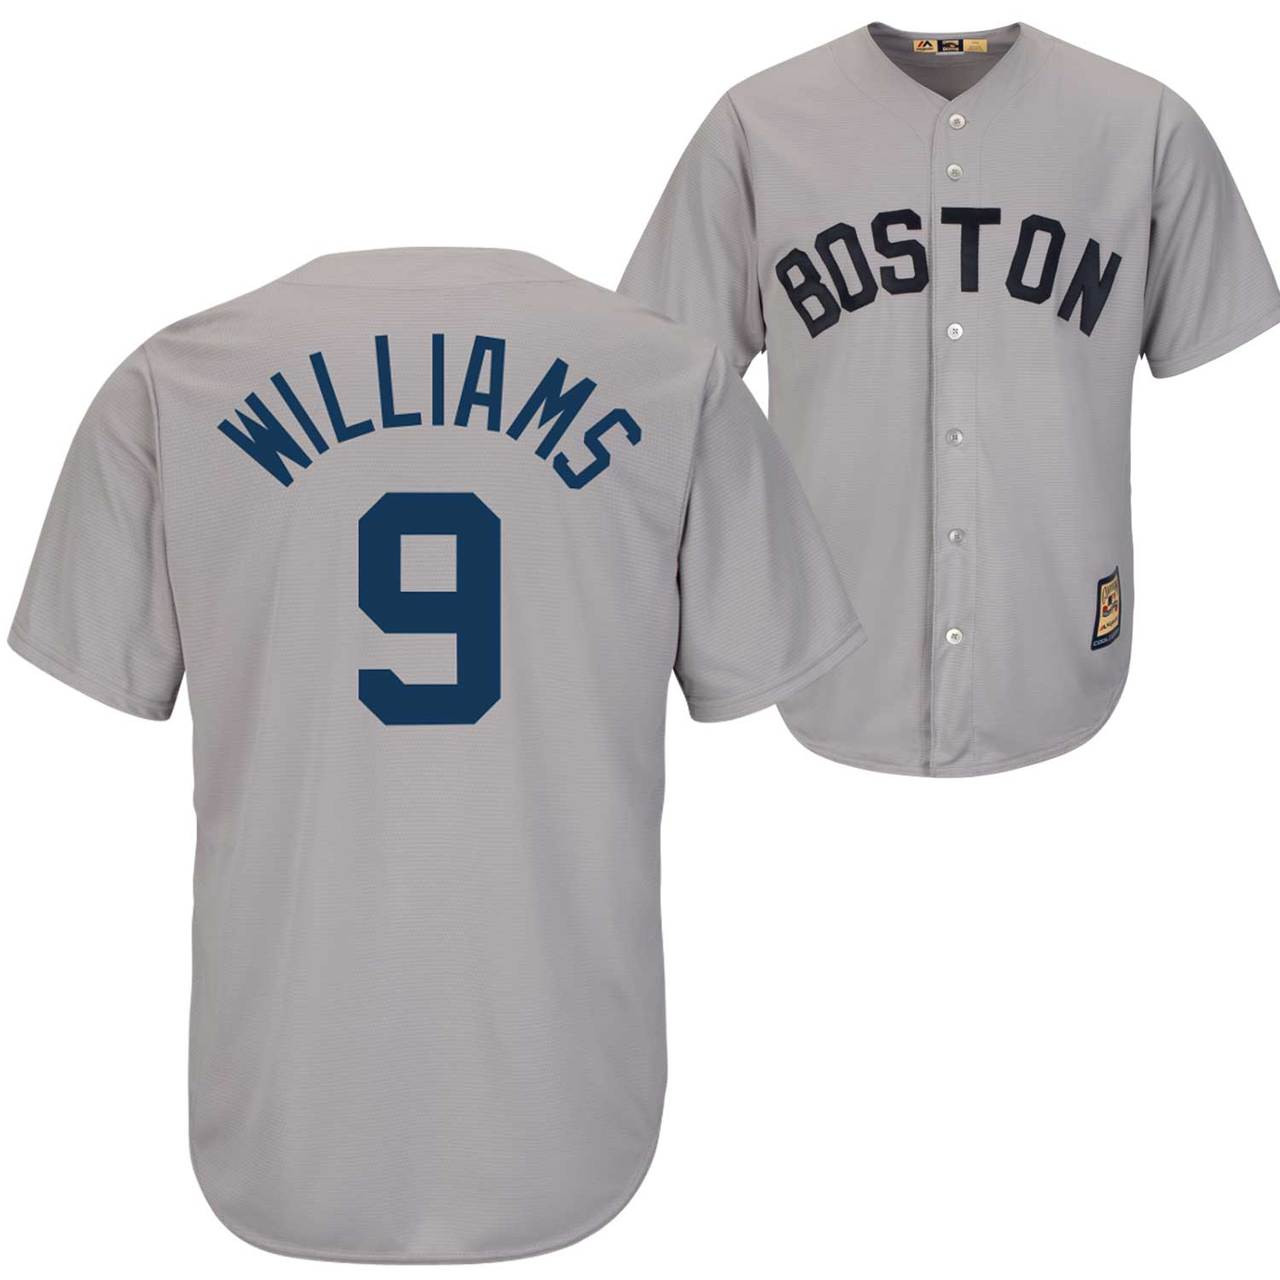 8b2c45803 ... Boston Red Sox Cooperstown Throwback Jersey Photo. Loading zoom